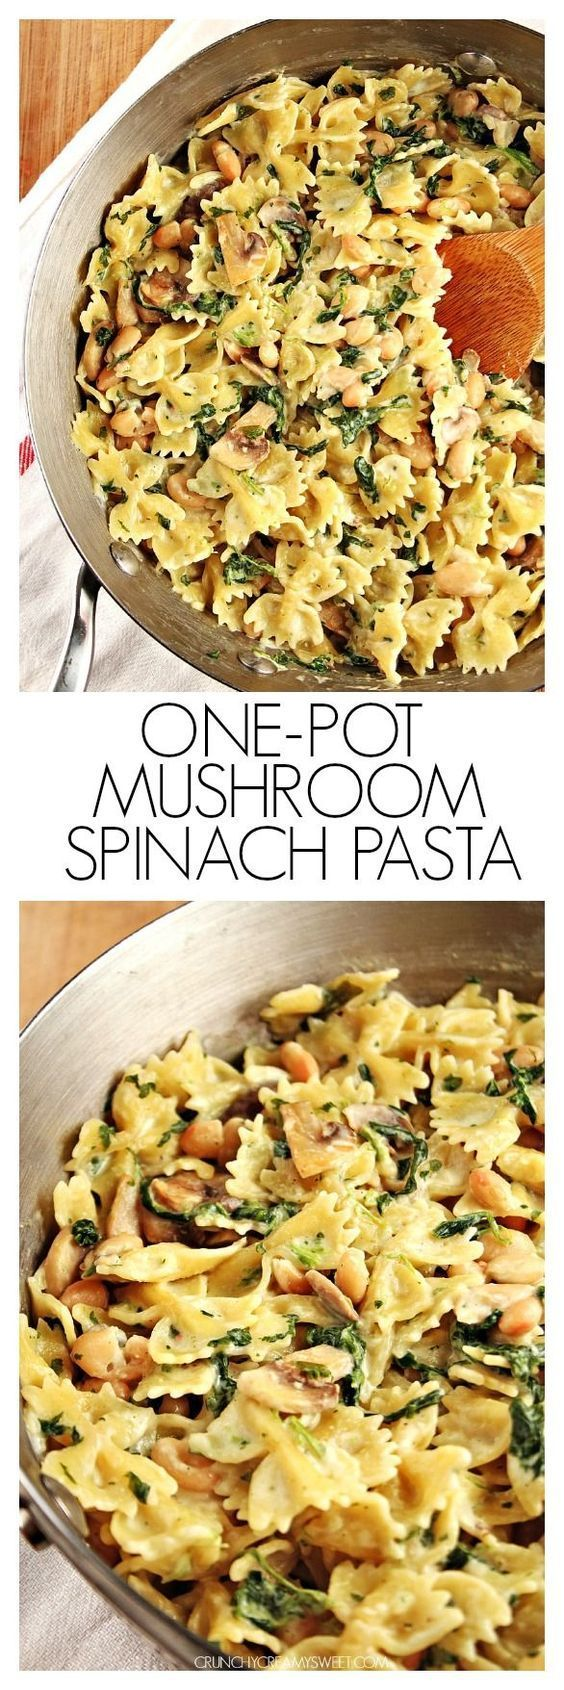 One Pot Creamy Mushroom Spinach Pasta with Beans #OnePotPasta